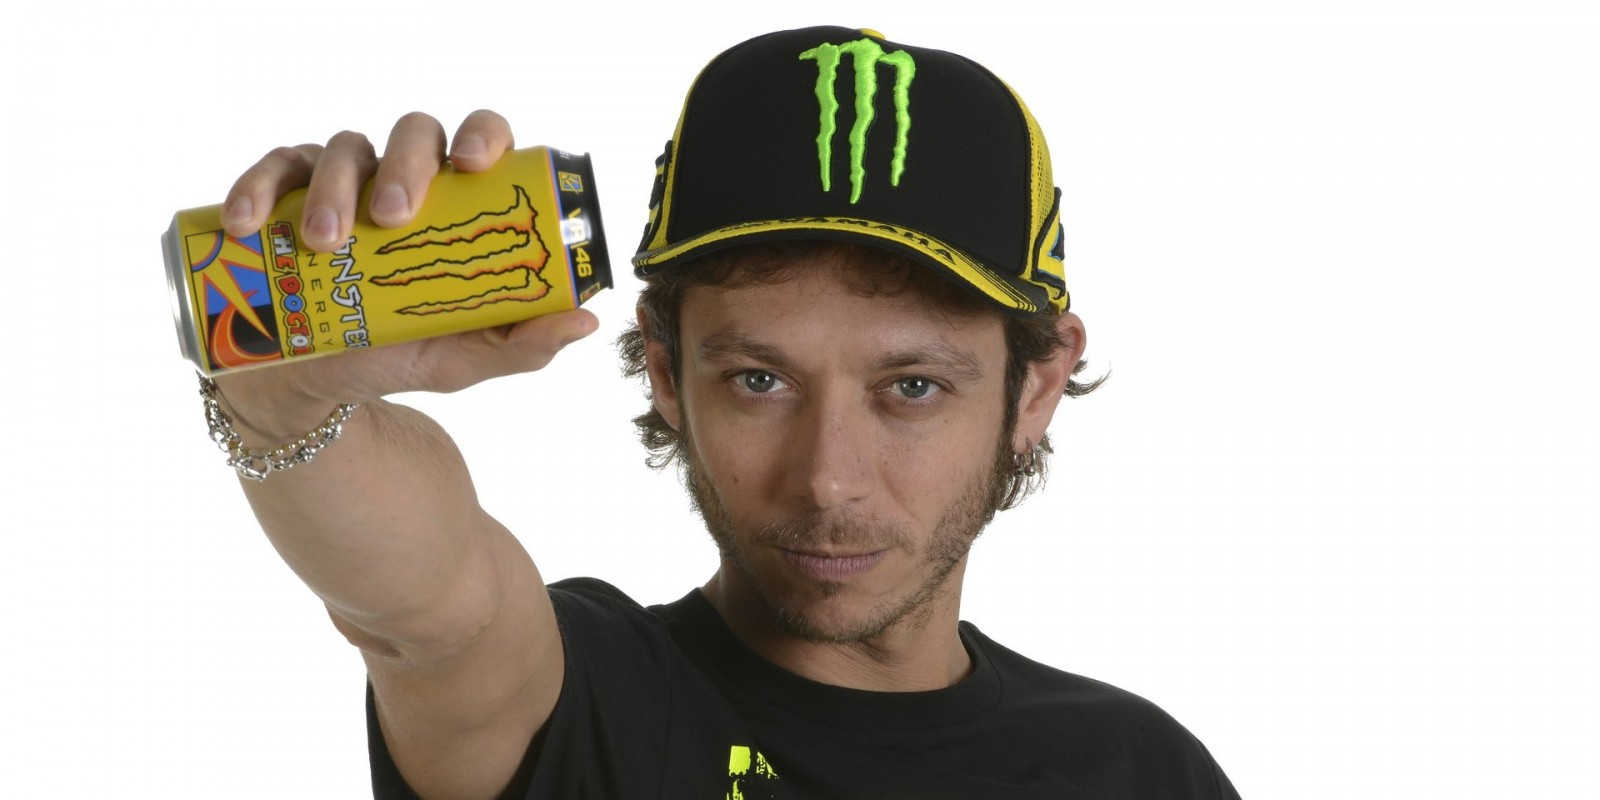 These pictures are taken for the launch of the new SKU made by Valentino Rossi. The new taste is named after his developer,